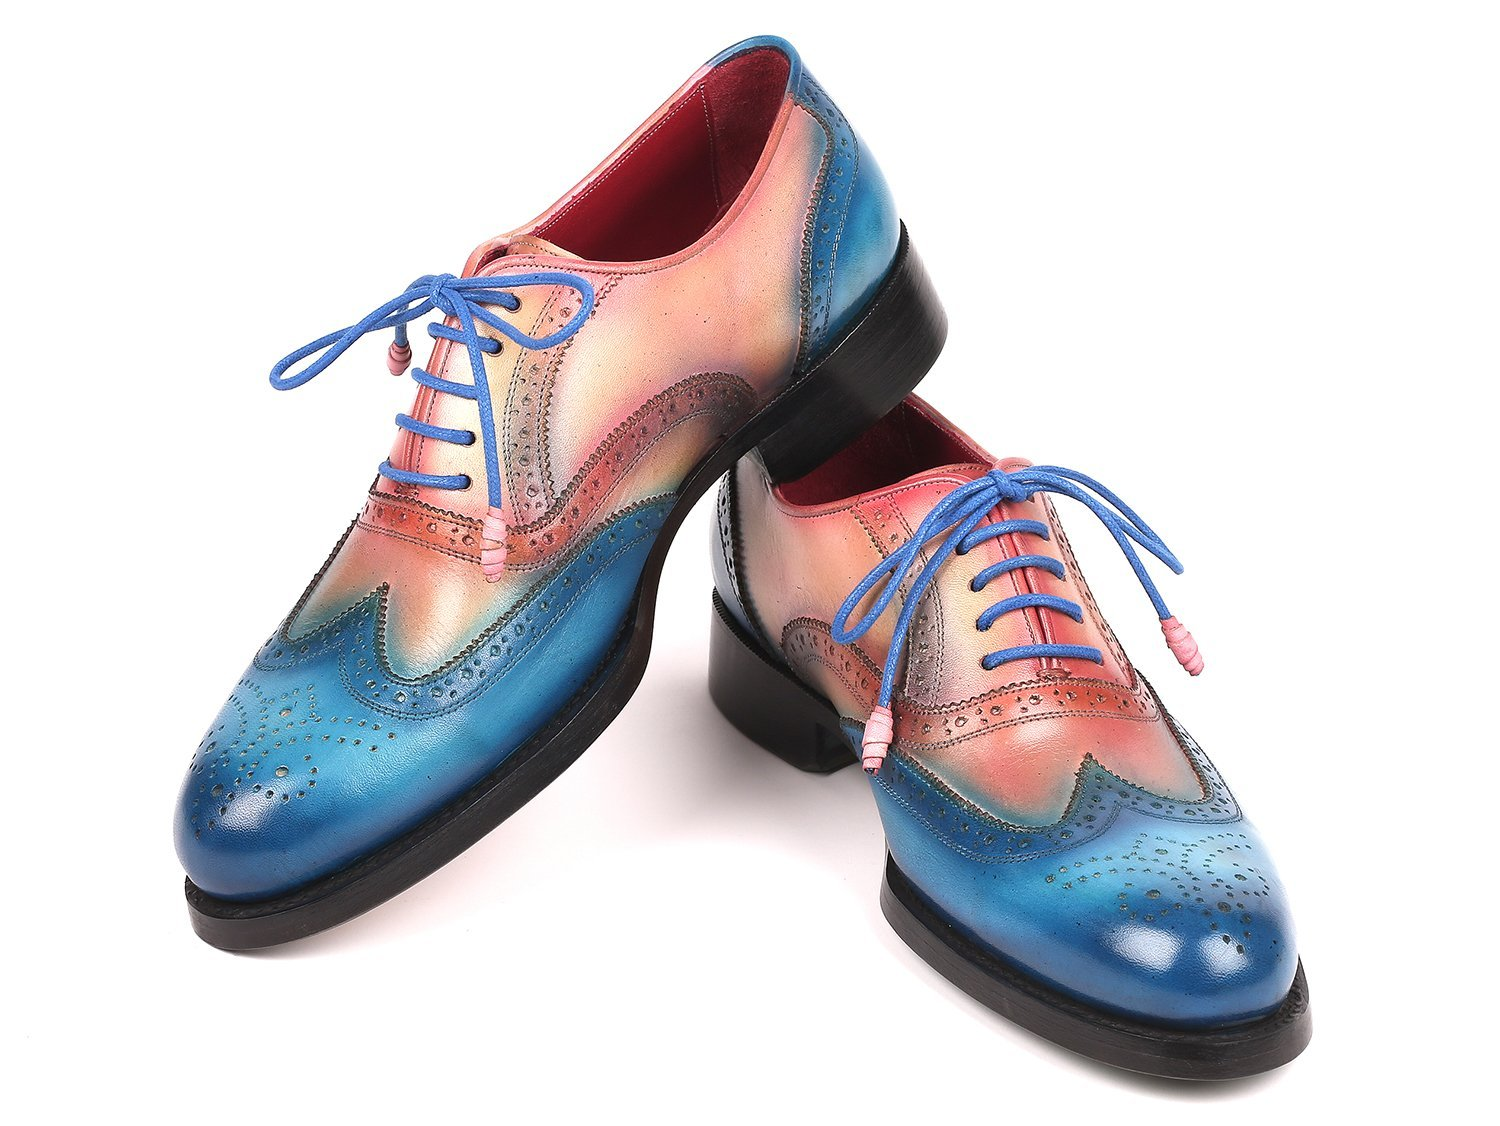 Paul Parkman Blue & Pink Men's Wingtip Oxfords Goodyear Welted (ID#027-BLUPNK)